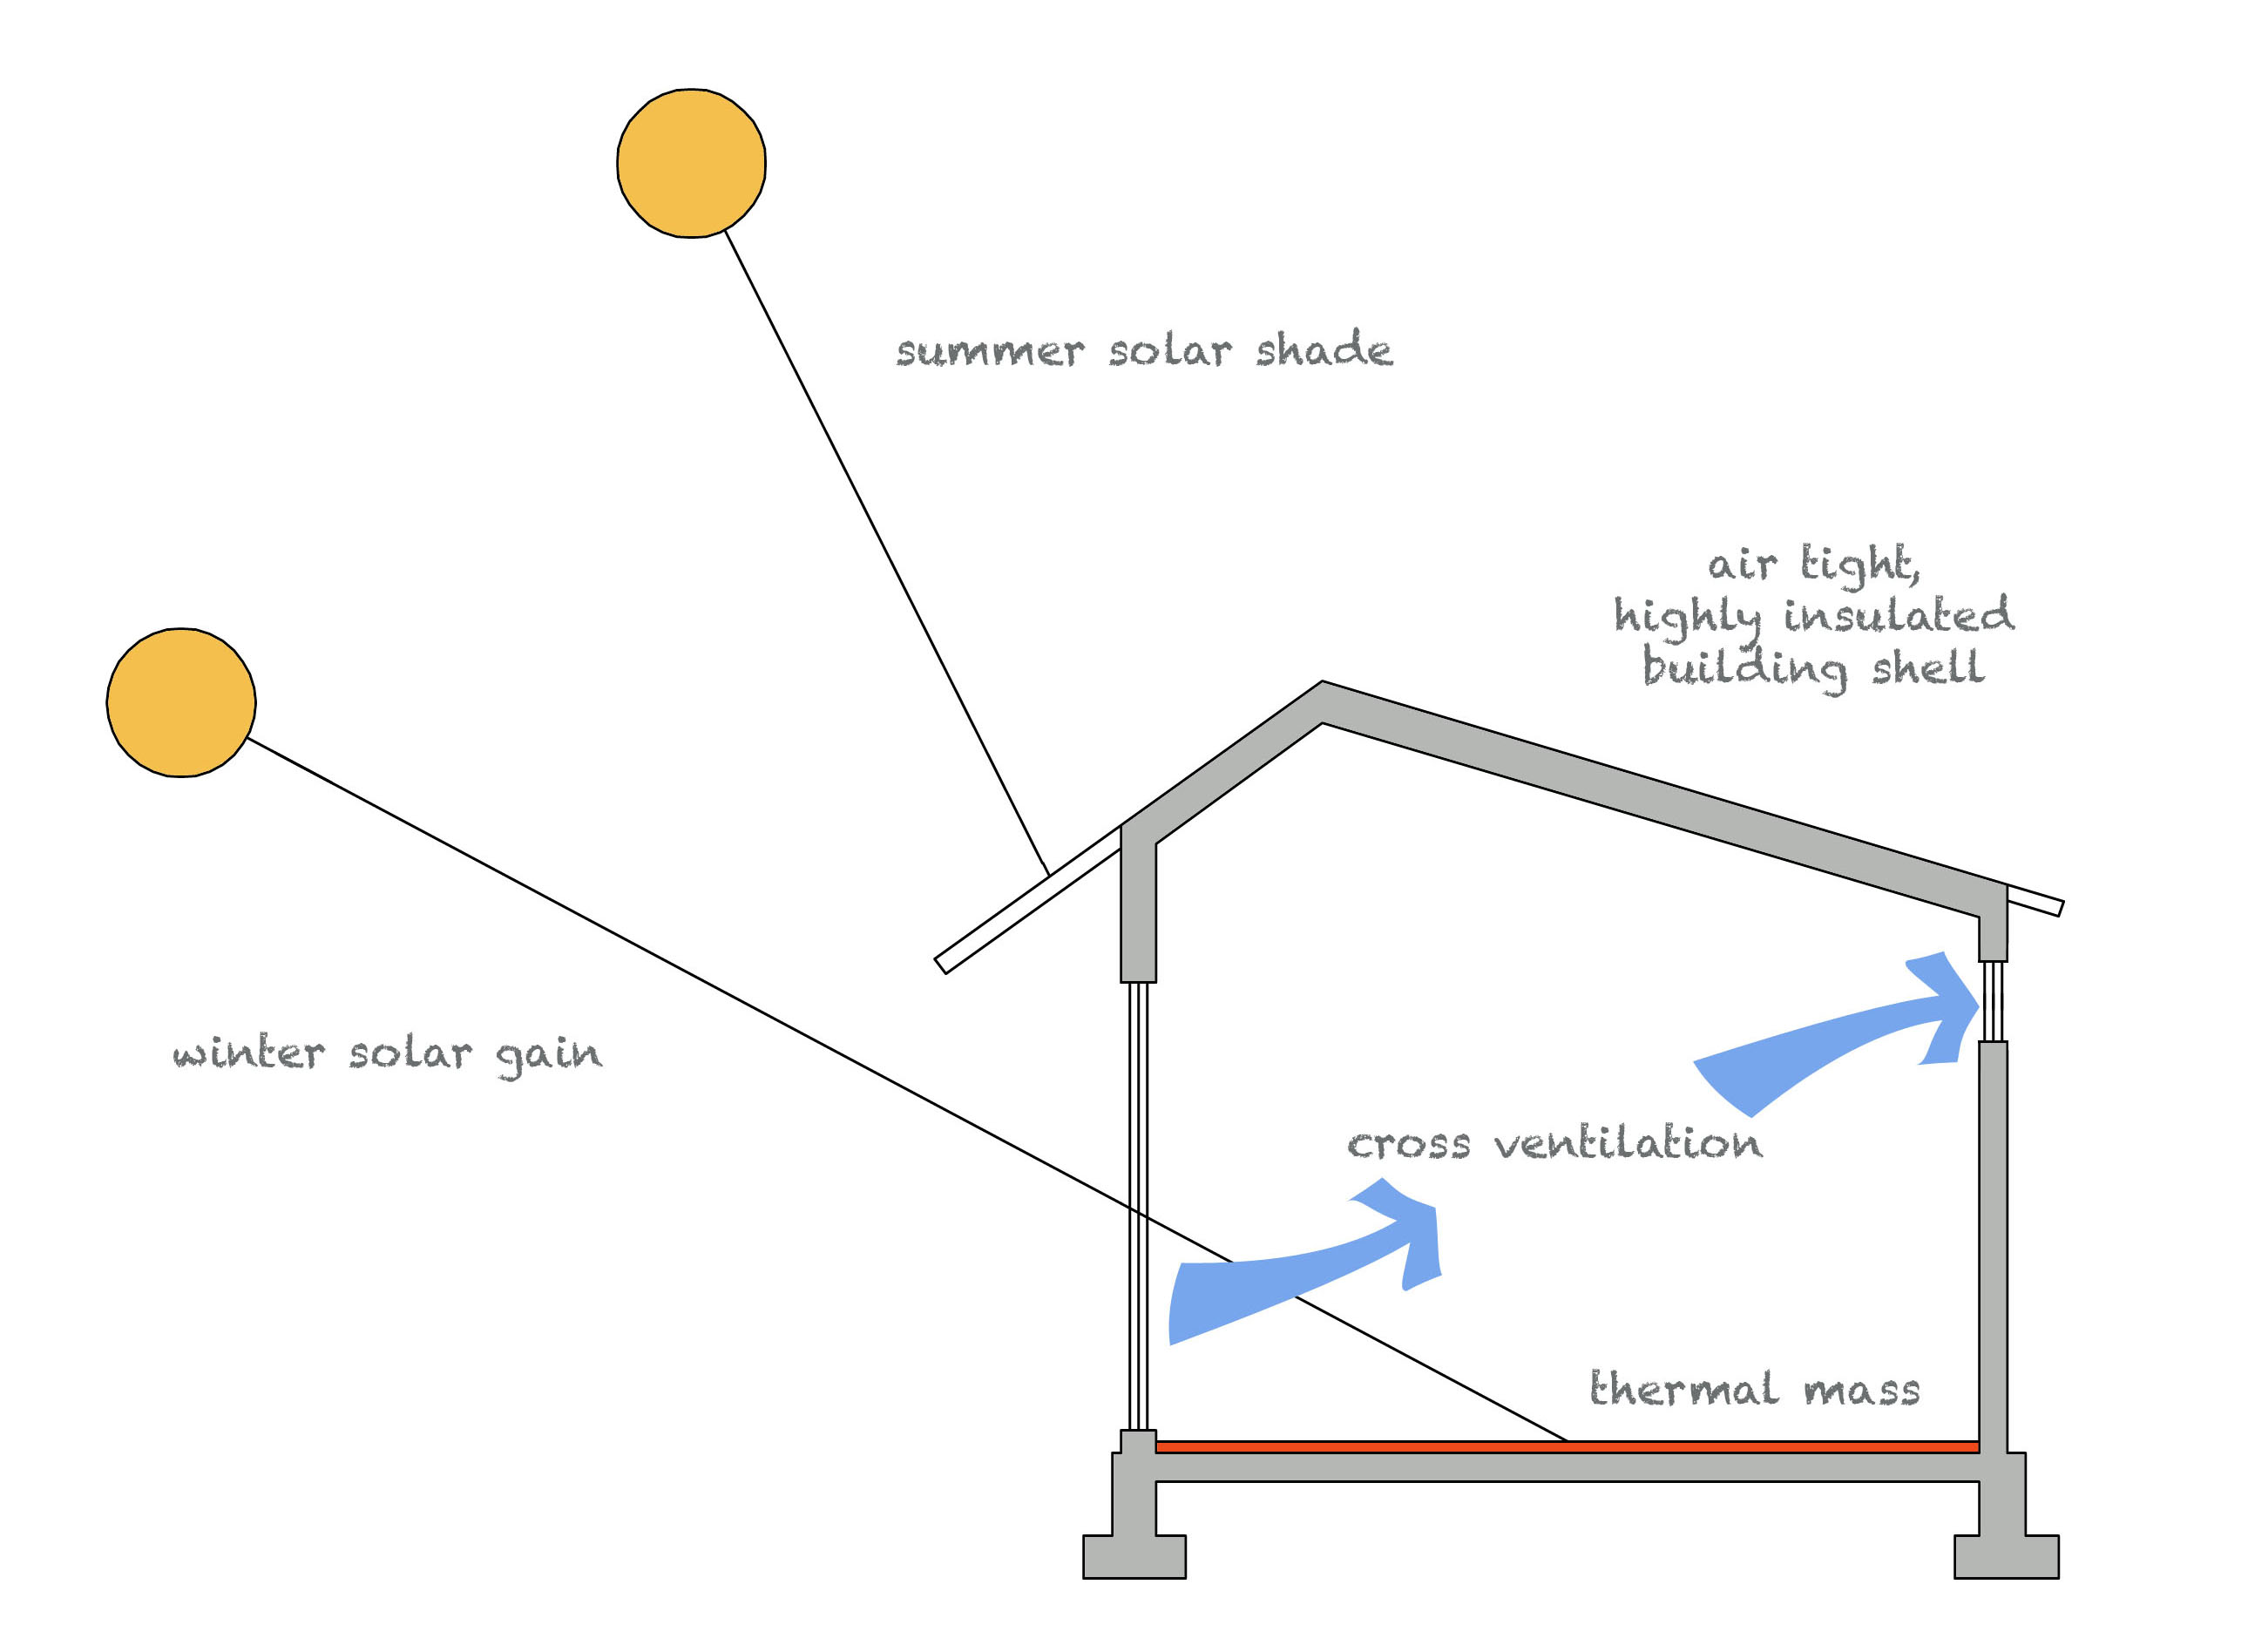 solar design diagram